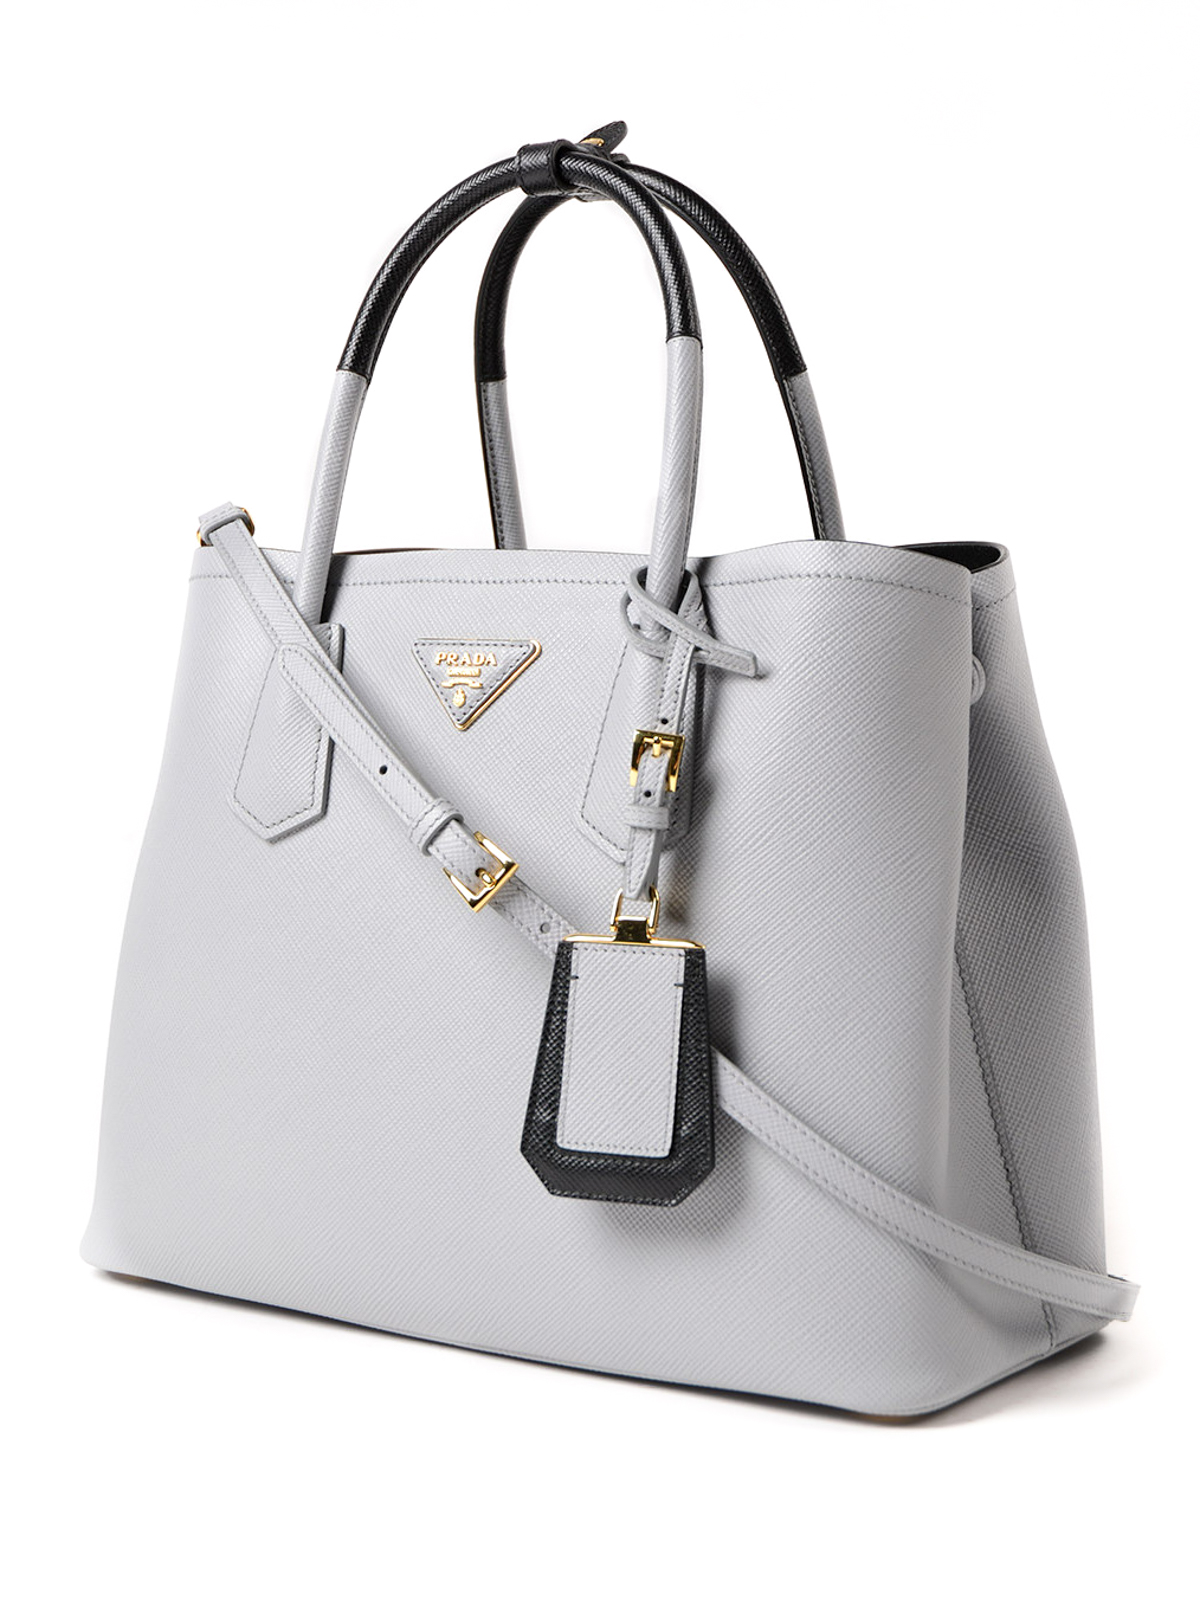 7dafed21626a Prada - Double saffiano leather tote - totes bags - 1BG7752A4AF0772VOOM